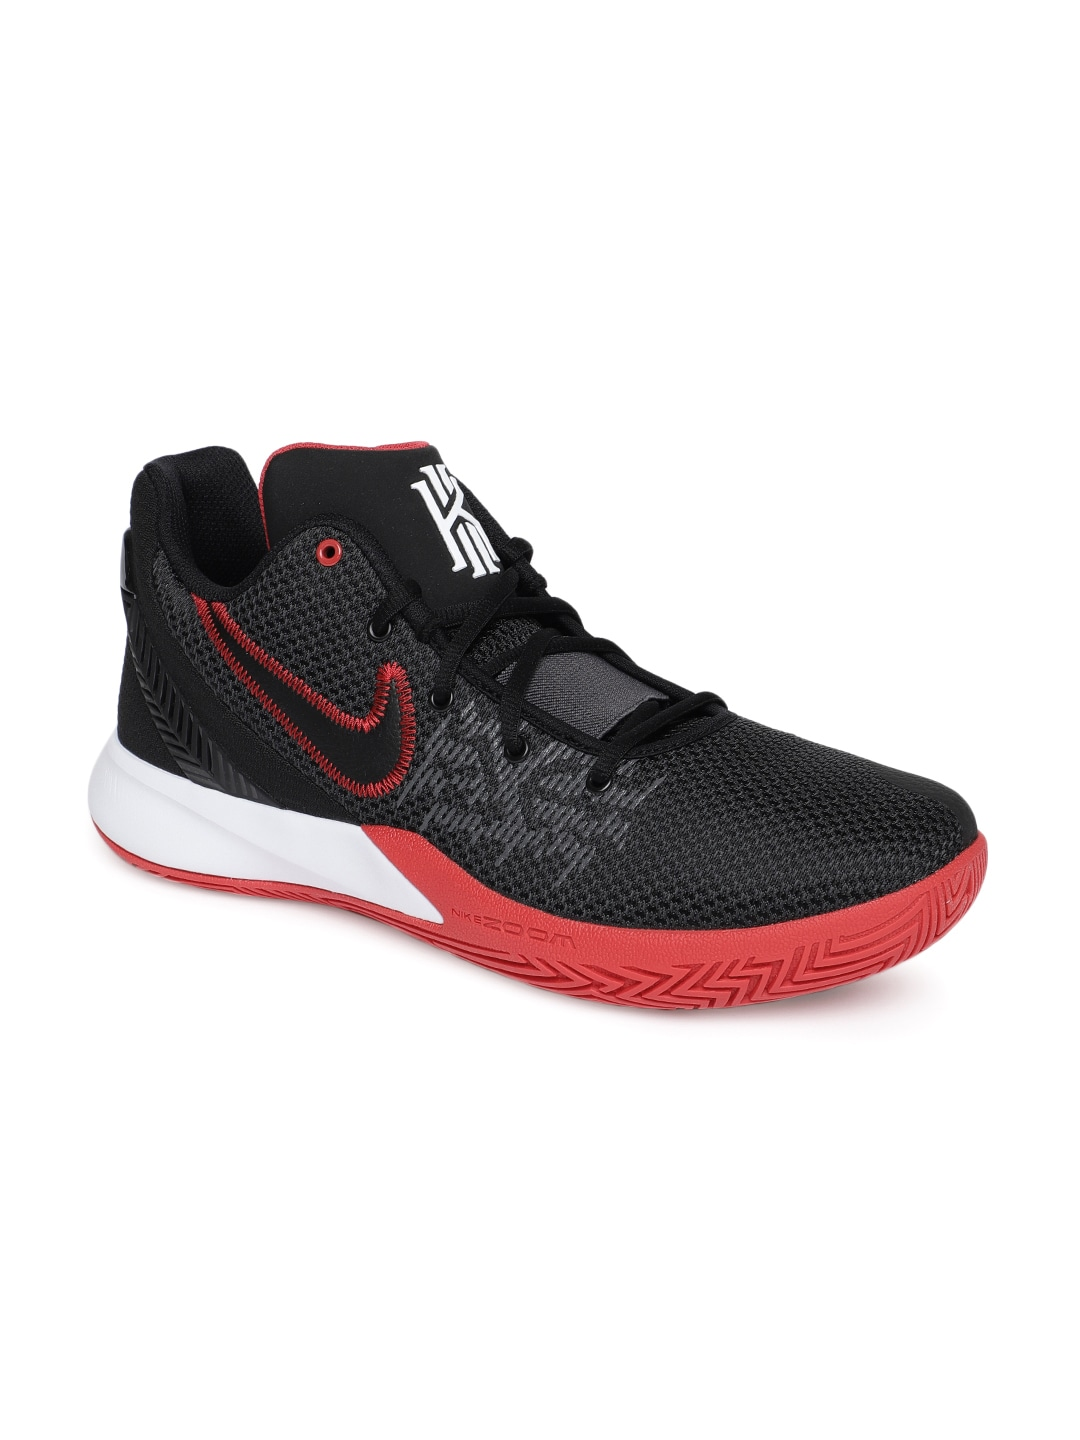 066484ecdbdb Nike Shoes - Buy Nike Shoes for Men